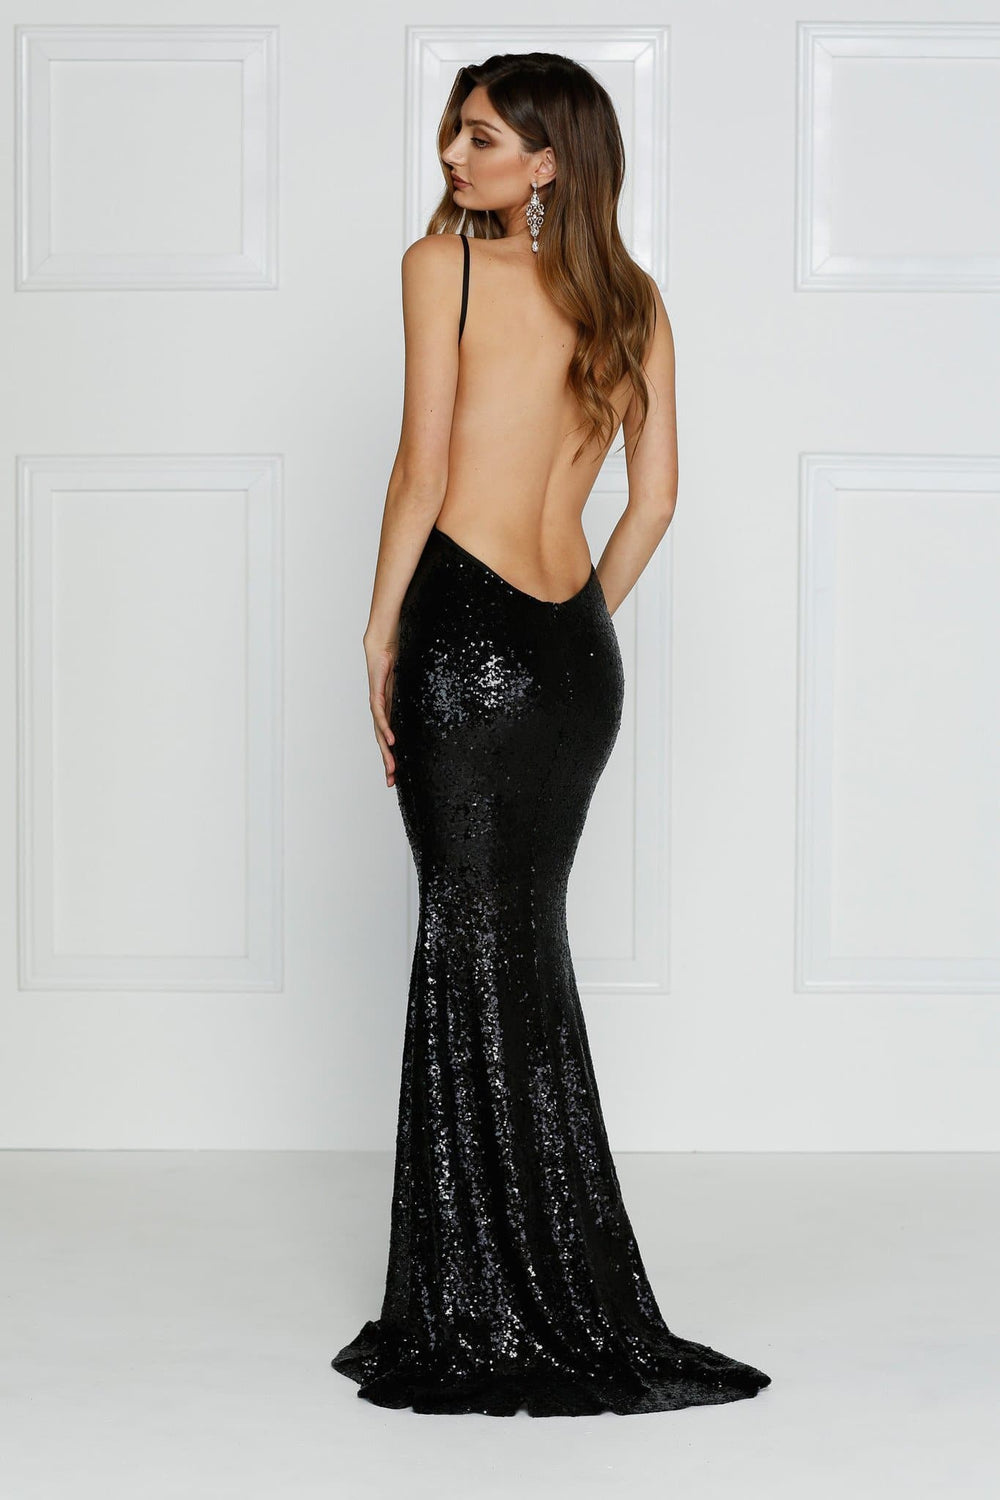 Yassmine - Black Sequin Sleeveless Gown with V-Neckline and Open Back 3c43ec473